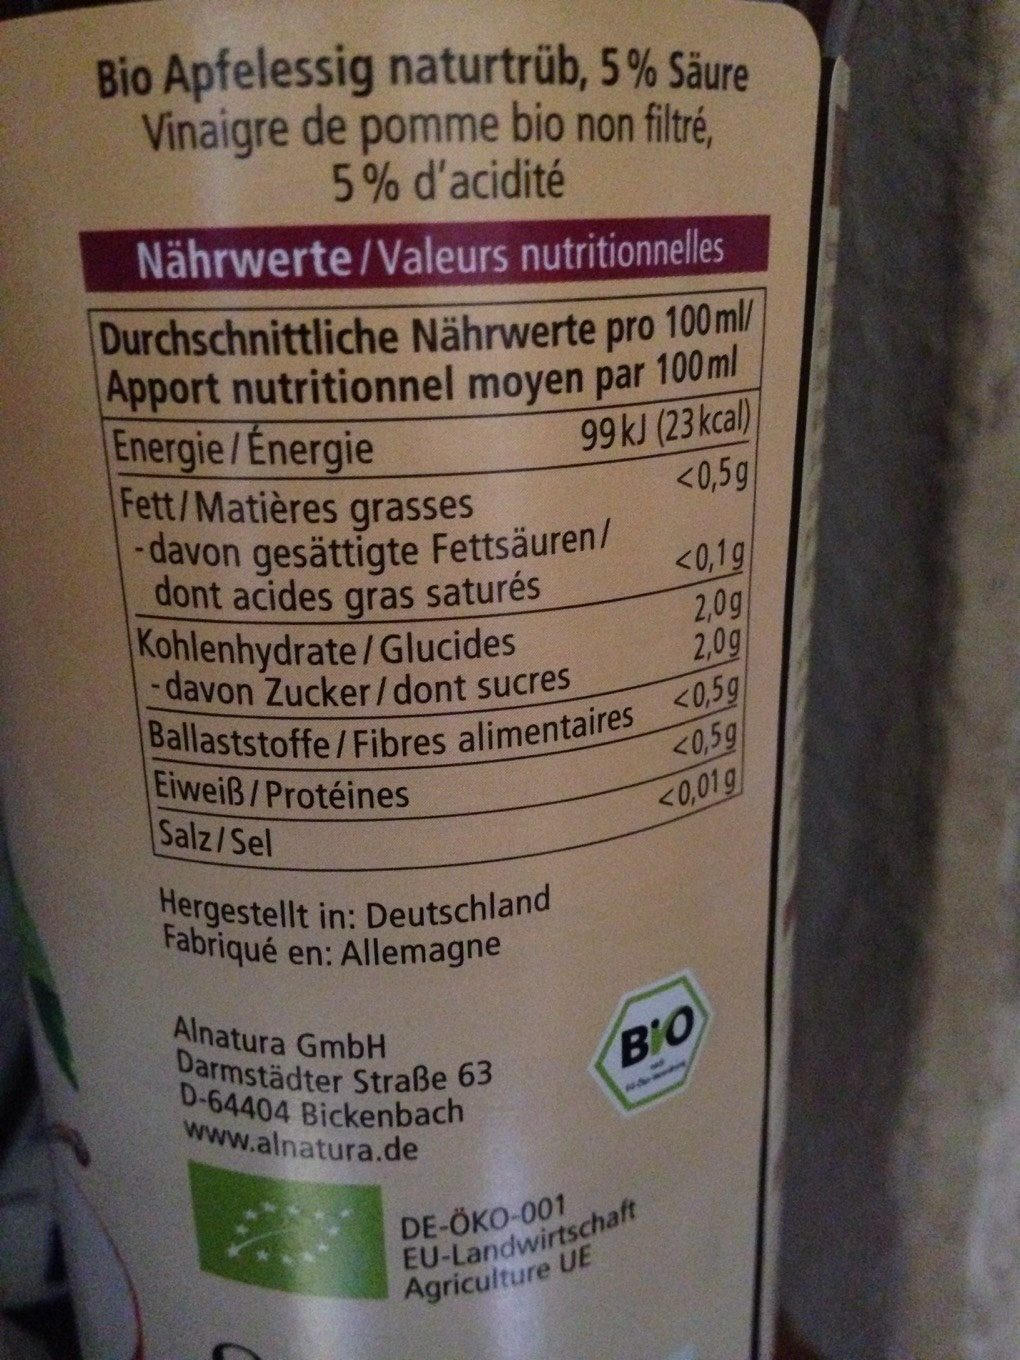 Apfelessig - Informations nutritionnelles - fr